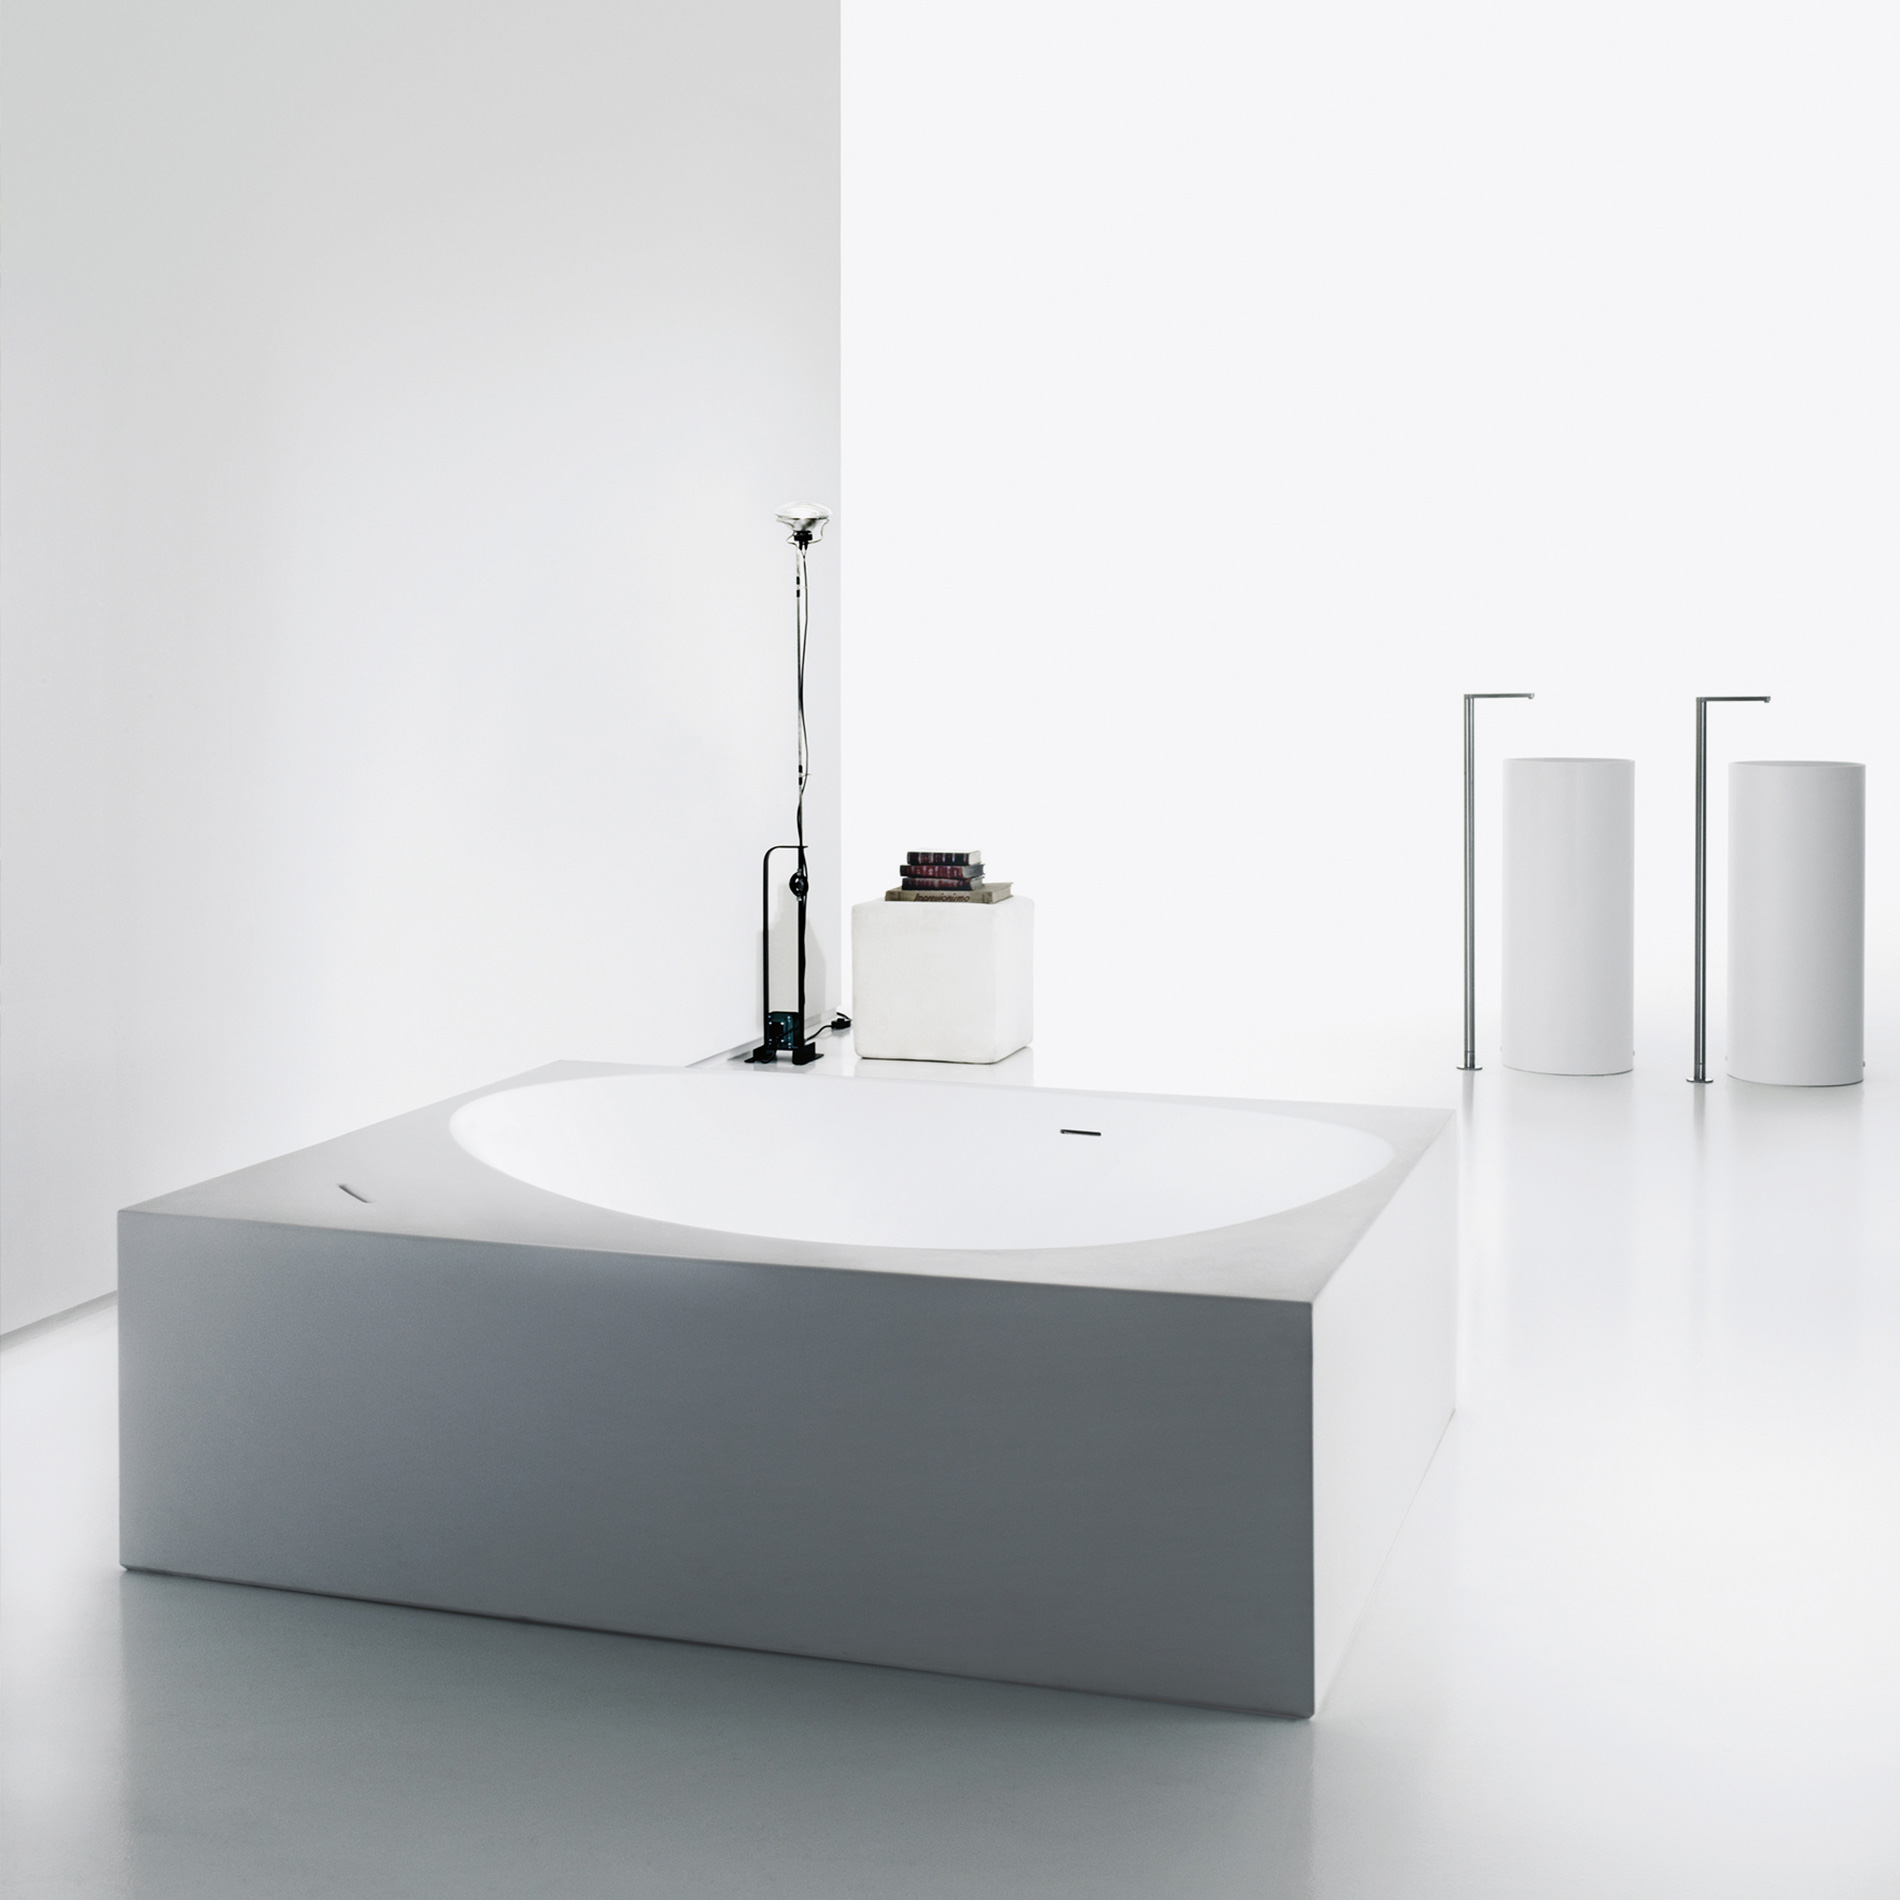 Nicos-International-home-products-Boffi-tub-1